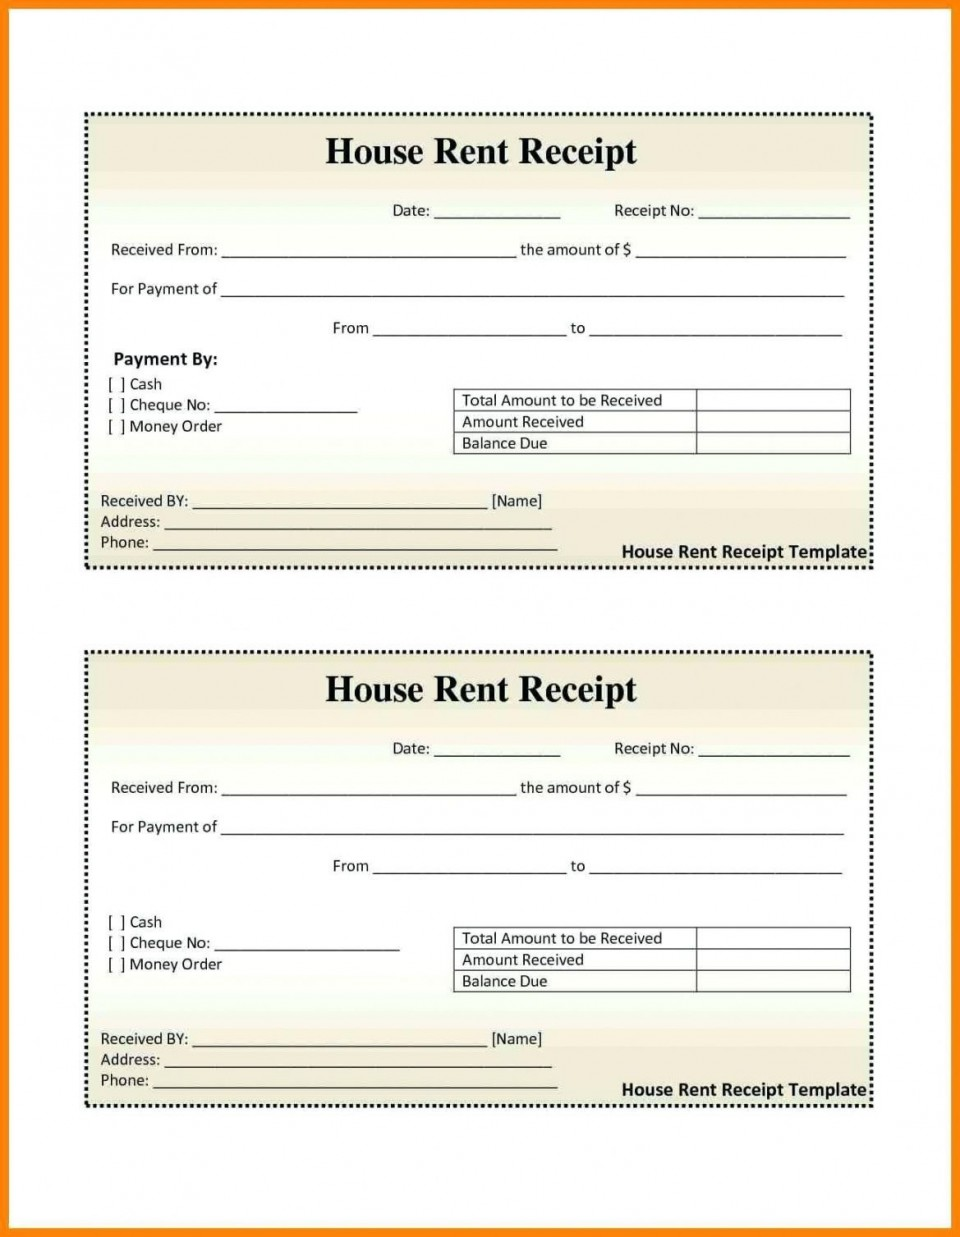 000 Excellent House Rent Receipt Sample Doc Photo  Template Word Document Free Download Format For Income Tax960